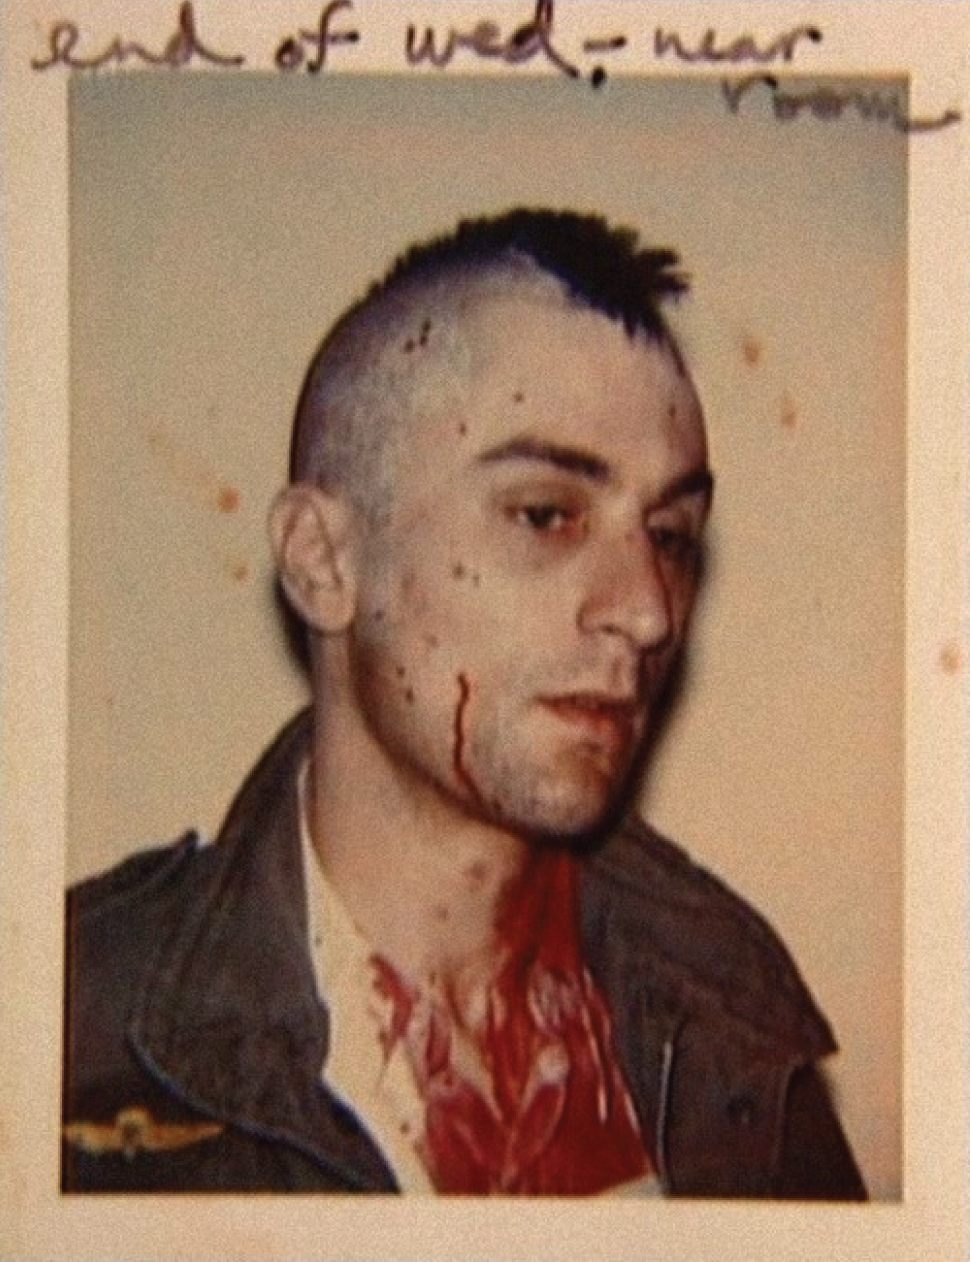 Robert De Niro nei panni di Travis Bickle in 'Taxi Driver', diretto da Martin Scorsese nel 1976; questo ruolo gli valse l'ascesa nell'olimpo dei miti del cinema contemporaneo. La foto, scattata sul set del film da qualcuno della troupe, riporta una misteriosa scritta che sembra alludere ad un appuntamento. Taxi Driver, Robert De Niro cult stories cultstories cinema cult story cultstory art culture music ipse dixit aneddoti citazioni frasi famose aforismi immagini foto personaggi cultura musica storie facts fatti celebrità vip cult spettacoli live performance concerto photo photography celebrity giornalismo scrittura libri genio pop icon attore cantante solista pittrice scultore attrice star diva sex symbol mito taxi driver cast taxi driver game taxi driver imdb taxi driver salary taxi driver jobs taxi driver trailer taxi driver poster taxi driver soundtrack taxi driver ending taxi driver netflix taxi driver quotes taxi driver jodie foster taxi driver analysis taxi driver app taxi driver are you talking to me taxi driver actors taxi driver awards taxi driver amazon taxi driver assault taxi driver arrested taxi driver asif hussain shah taxi driver albert brooks a taxi driver was going the wrong way a taxi driver on his death a taxi driver on his death poem a taxi driver commenced his journey a taxi driver job a taxi driver story a taxi driver movie a taxi driver games a taxi driver diary a taxi driver's life taxi driver blu ray taxi driver band taxi driver betsy taxi driver book taxi driver background check taxi driver blog taxi driver budget taxi driver benefits taxi driver band omaha ne taxi driver be my shrink for the hour mr b taxi driver taxi driver b a b.o taxi driver b.o. du film taxi driver taxi driver costume taxi driver crossword taxi driver characters taxi driver cinematography taxi driver crime taxi driver criterion taxi driver chicago taxi driver career taxi driver cap schedule c taxi driver taxi driver c pas bien taxi driver director taxi driver de niro taxi driver dvd taxi driver duties taxi driver description taxi driver definition taxi driver drummer taxi driver death taxi driver diner scene taxi driver dev anand taxi driver palme d or taxi driver 3 d driver łódź taxi taxi driver bande d'annonce juego de taxi driver jeux d taxi driver baby foot taxi driver d'occasion taxi driver bassin d'arcachon taxi driver fond d'écran taxi driver kanal d taxi driver explained taxi driver ebert taxi driver easy andy taxi driver employment taxi driver earnings taxi driver essay taxi driver estimate taxi driver ending analysis taxi driver employee or independent contractor drive e taxi driver chiacchiere e distintivo taxi driver e taxi-driver-android-app.apk saudade e adeus taxi driver o que e taxi driver taxi driver e toro scatenato taxi driver film taxi driver full taxi driver full movie free taxi driver filming locations taxi driver final scene taxi driver from how i met your mother taxi driver famous quotes taxi driver film analysis taxi driver finger gun taxi driver font london taxi drivers f taxi driver f taxi driver gif taxi driver gym class heroes taxi driver guns taxi driver gets shot taxi driver game 3d taxi driver genre taxi driver games online taxi driver game fog taxi driver girl taxi driver g g shock taxi driver taxi driver hat taxi driver haircut taxi driver himym taxi driver hindi movie taxi driver hourly wage taxi driver hulu taxi driver here is a man taxi driver harry chapin taxi driver hiring taxi driver hours h zombie taxi driver taxi driver in spanish taxi driver income taxi driver in pulp fiction taxi driver imfdb taxi driver images taxi driver insurance taxi driver in scrooged taxi driver in nyc taxi driver in las vegas i a taxi driver in calcutta i a taxi driver song i am taxi driver in calcutta taxi driver job description taxi driver jacket taxi driver jodie foster age taxi driver jobs las vegas taxi driver jobs near me taxi driver jokes taxi driver jobs nyc taxi driver jobs in chicago triple j taxi driver taxi driver killed taxi driver killed on camera taxi driver kidnaps passenger taxi driver killer taxi driver killed denver taxi driver kills passenger taxi driver killed in rahway nj taxi driver killed in okc taxi driver killed in orlando taxi driver kidnaps passenger movie 1099 k taxi drivers taxi driver license taxi driver las vegas taxi driver locations taxi driver list taxi driver long beach taxi driver loneliness taxi driver license cost taxi driver license ny taxi driver los angeles taxi driver last scene r plus l - taxi driver l'odio taxi driver taxi driver movie online taxi driver mohawk taxi driver movie poster taxi driver meme taxi driver monologue taxi driver music taxi driver movie cast taxi driver meaning taxi driver martin scorsese cameo taxi driver movie trailer mr m taxi driver taxi driver movie i ' m a taxi driver taxi driver m-65 jacket m cab driver m-65 taxi driver taxi driver number taxi driver near me taxi driver nyc taxi driver new york taxi driver name taxi driver nyc salary taxi driver novel taxi driver needed taxi driver news taxi driver online taxi driver online free taxi driver omaha taxi driver opening taxi driver ost taxi driver opening scene taxi driver overrated taxi driver on netflix taxi driver online game taxi driver oscar tosh.o taxi driver tosh.o taxi driver crash tosh.o taxi driver web redemption cast of taxi driver adventures of taxi driver ending of taxi driver games of taxi driver songs of taxi driver meaning of taxi driver story of taxi driver and old lady taxi driver plot taxi driver pay taxi driver parents guide taxi driver pictures taxi driver pulp fiction taxi driver pimp taxi driver phone number taxi driver photos taxi driver prank taxi driver 720 p izle taxi driver 720p taxi driver quiz taxi driver quote are you talking to me taxi driver quick draw taxi driver queen latifah online taxi driver quotes real rain taxi driver quotes organizized taxi driver questions and answers taxi driver quotes june 29th' taxi driver questions q significa taxi driver en español taxi driver robert de niro taxi driver rotten tomatoes taxi driver review taxi driver remake taxi driver requirements taxi driver roger ebert taxi driver rain taxi driver resume taxi driver running time taxi driver rating taxi driver r rating taxi driver shot taxi driver script taxi driver song taxi driver synopsis taxi driver streaming taxi driver supernatural taxi driver scene taxi driver shirt taxi driver salary nyc taxi driver game s taxi driver martin s taxi driver online s prevodom taxi driver s taxi driver movie s taxi driver s prevodom игри с taxi driver taxi driver theme taxi driver tip taxi driver travis bickle taxi driver t shirt taxi driver trivia taxi driver theme song taxi driver tv tropes taxi driver training taxi driver test taxi driver taxi driver union taxi driver uber taxi driver unblocked taxi driver uniform taxi driver union nyc taxi driver unblocked games taxi driver youtube taxi driver uk taxi driver uk requirements taxi driver uae youtube taxi driver dancing dublin taxi driver youtube youtube dublin taxi driver dancing do u tip taxi drivers if u marry taxi driver should u tip taxi drivers if u marry taxi driver mp3 if u marry taxi driver i dont care taxi driver video game taxi driver vhs taxi driver vs uber taxi driver viooz taxi driver video taxi driver vs raging bull taxi driver vs goodfellas taxi driver violence taxi driver voice over taxi driver vietnam gta v taxi driver gta v online taxi driver gooch v dublin taxi driver taxi driver wiki taxi driver wanted taxi driver wallpaper taxi driver workout taxi driver wages taxi driver wizard taxi driver workout scene taxi driver wisdom taxi driver wallet taxi driver weapons taxi driver w anglii gry w taxi cab driver gry w taxi driver taxi driver xmovies8 taxi driver x in bullet taxi driver xbox taxi driver x rating taxi driver xvid x case taxi driver x bullet taxi driver taxi driver x taxi driver x online taxi driver x reparto taxi driver year taxi driver you talkin to me quote taxi driver yify taxi driver yells at uber taxi driver yellow cab taxi driver youtube trailer taxi driver you talking to me mp3 taxi driver yahoo game taxi driver you talking to me scene analysis pokemon x and y taxi drivers drive y taxi driver jocuri taxi n.y cab driver fria y distante taxi driver taxi driver zion t taxi driver zombie prank taxi driver zoo free taxi driver zoowax taxi driver zilizopendwa taxi driver zavvi steelbook taxi driver zurich taxi driver zeus subtitles taxi driver zippo taxi driver zitate rysiek z klanu taxi driver tosh.0 taxi driver taxi driver 300 000 tosh.0 taxi driver crash taxi driver $7 000 telecharger taxi driver sur 01net taxi driver cineblog01 taxi driver 1976 taxi driver 1976 full movie taxi driver 1954 taxi driver 1976 watch online taxi driver 1080p taxi driver 1976 analysis taxi driver 1976 online free taxi driver 1975 taxi driver 1976 trailer taxi driver 1976 full movie online 1 channel taxi driver 1 6 taxi driver mafia 1 taxi driver number 1 taxi driver campaign sherlock episode 1 taxi driver sherlock series 1 taxi driver 1 channel.ch taxi driver taxi driver 1 game taxi driver 1 million miles taxi driver 1 million taxi driver 2015 taxi driver 2 movie taxi driver 2004 taxi driver 2 mod apk taxi driver 2014 taxi driver 2 apk taxi driver 2013 taxi driver 2006 game download taxi driver 2 cheats taxi driver 2 android mafia 2 taxi driver mod mafia 2 taxi driver gta 2 taxi drivers must die jackass 2 taxi driver sims 2 taxi driver samorost 2 taxi driver gta 2 taxi driver nvq 2 taxi driver smurfs 2 taxi driver mafia 2 taxi driver mod download taxi driver 3d taxi driver 3.5 taxi driver 3d simulator taxi driver 3d friv taxi driver 3d game download taxi driver 300mb taxi driver 3d apk taxi driver 35th anniversary blu ray taxi driver 3d cab parking taxi driver 3 game taxi 3 driver gta 3 taxi driver gta 3 taxi driver quotes sims 3 taxi driver gta 3 taxi driver glitch hostel 3 taxi driver rush hour 3 taxi driver fringe season 3 taxi driver saints row 3 taxi driver rush hour 3 taxi driver wife taxi driver 4k taxi driver 44 magnum taxi driver 4k blu ray taxi driver 44 magnum scene taxi driver 44 magnum quote taxi driver 40th anniversary taxi driver 4k review taxi driver 4k restoration taxi driver 4 game taxi driver 457 visa gta 4 taxi driver gta 4 taxi driver mod gta 4 taxi driver quotes gta 4 taxi drivers wanted gta 4 taxi driver sayings gta 4 taxi driver mission movie about 4 taxi drivers gta 4 taxi driver ps3 gta 4 taxi driver mod download gta 4 taxi drivers wanted number taxi driver 50/50 split taxi driver 50 pushups taxi driver 57th street taxi driver 50 reasons taxi driver 5 online subtitrat taxi driver 5 obstructions taxi driver 50 cents taxi driver gta 5 taxi driver gta 5 online taxi driver quotes 50 pushups 5 taxi drivers movie gta 5 taxi driver yakuza 5 taxi driver gta 5 taxi driver rewards royce da 5 taxi driver die hard 5 taxi driver royce da 5 taxi driver lyrics royce da 5'9 taxi driver mp3 royce da 5'9 taxi driver download taxi driver 5 taxi driver 60632 taxi driver 1/6 taxi driver 1/6 figure taxi driver with 6 points super taxi driver nokia 6300 ang taxi driver part 6 taxi driver m 65 6 letter word for taxi driver taxi driver 76 taxi driver 720p kickass taxi driver 720p yify taxi driver 720p mkv subtitles english taxi driver 7000 taxi driver 720p mkv subtitles taxi driver 720p english subtitles taxi driver 7000 a month taxi driver 720p mkv 7 taxi drivers killed seven taxi drivers killed in kawangware 7 news taxi driver 7 up taxi driver taxi driver 8/8 taxi driver 818 taxi driver 8x19 8.19 taxi driver super taxi driver windows 8 taxi driver (1976) brrip 720p 800mb 8.5 taxi driver taxi driver subtitulos 842 mb taxi driver super 8 8 taxi drivers killed supernatural season 8 taxi driver supernatural season 8 taxi driver review supernatural season 8 taxi driver online supernatural season 8 taxi driver watch online supernatural season 8 taxi driver watch supernatural season 8 taxi driver streaming supernatural season 8 taxi driver synopsis supernatural season 8 taxi driver recap supernatural season 8 taxi driver episode taxi driver 9211 taxi driver 9/11 taxi driver 9211 songs taxi driver 9gag taxi driver 90 year old woman taxi driver mobile9 911 taxi driver taxi driver squirrel 9gag taxi driver 91607 taxi driver 98100 9/11 taxi driver mobile 9 taxi driver game 9 news brisbane taxi driver taxi driver 1099 taxi driver 1080 taxi driver 1080p download taxi driver 1080p yify taxi driver 101 car games taxi driver 1080p tpb taxi driver 1080p subtitles taxi driver 1099 k taxi driver 1040 ben 10 taxi driver ben 10 taxi driver game top 10 worst taxi drivers juegos 10 taxi driver 10 juegos de driver taxi